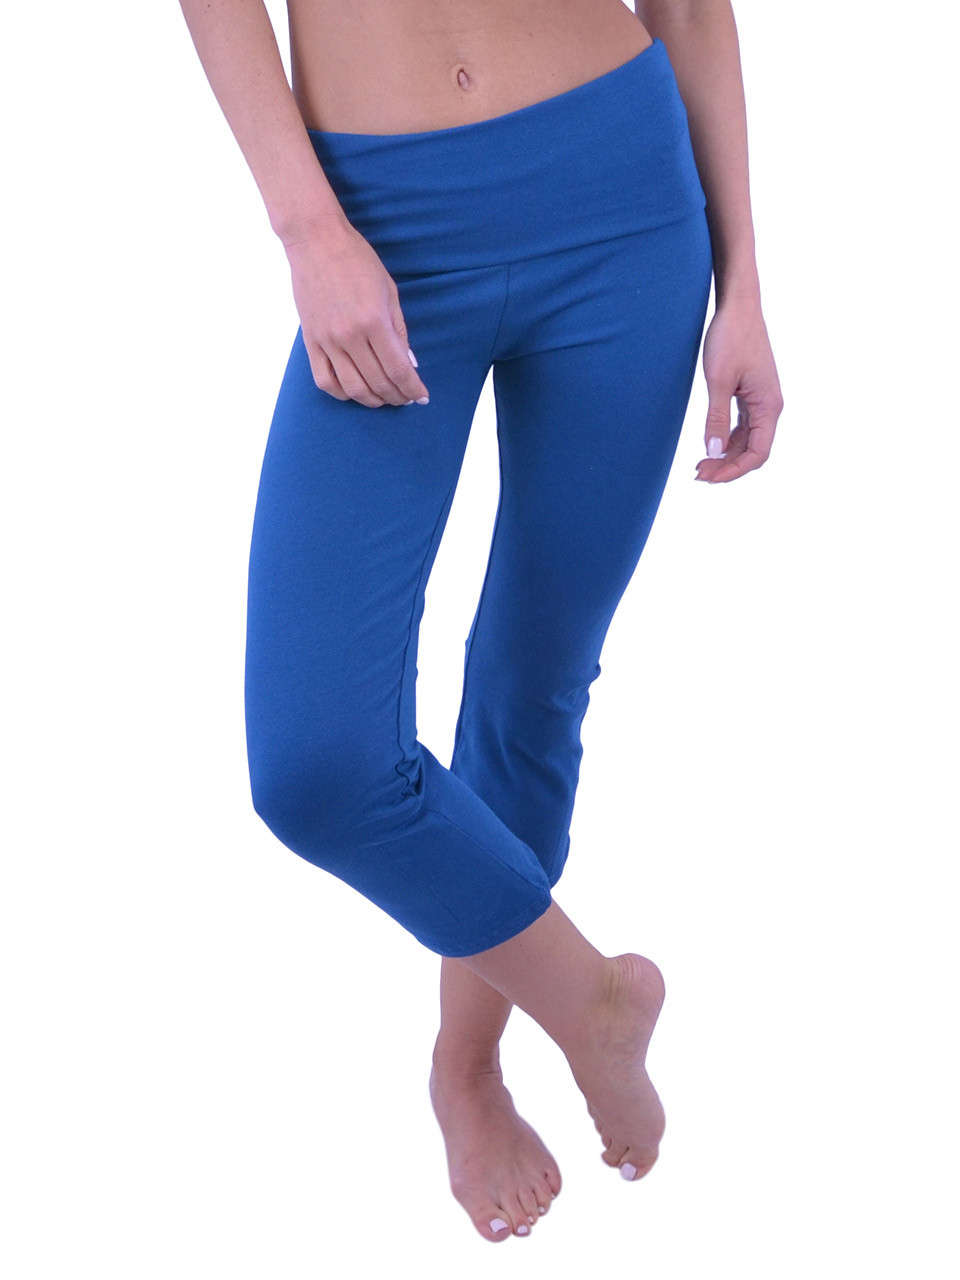 608e17648fa Vivian s Fashions Yoga Pants - Capri (Misses and Misses Plus Sizes ...